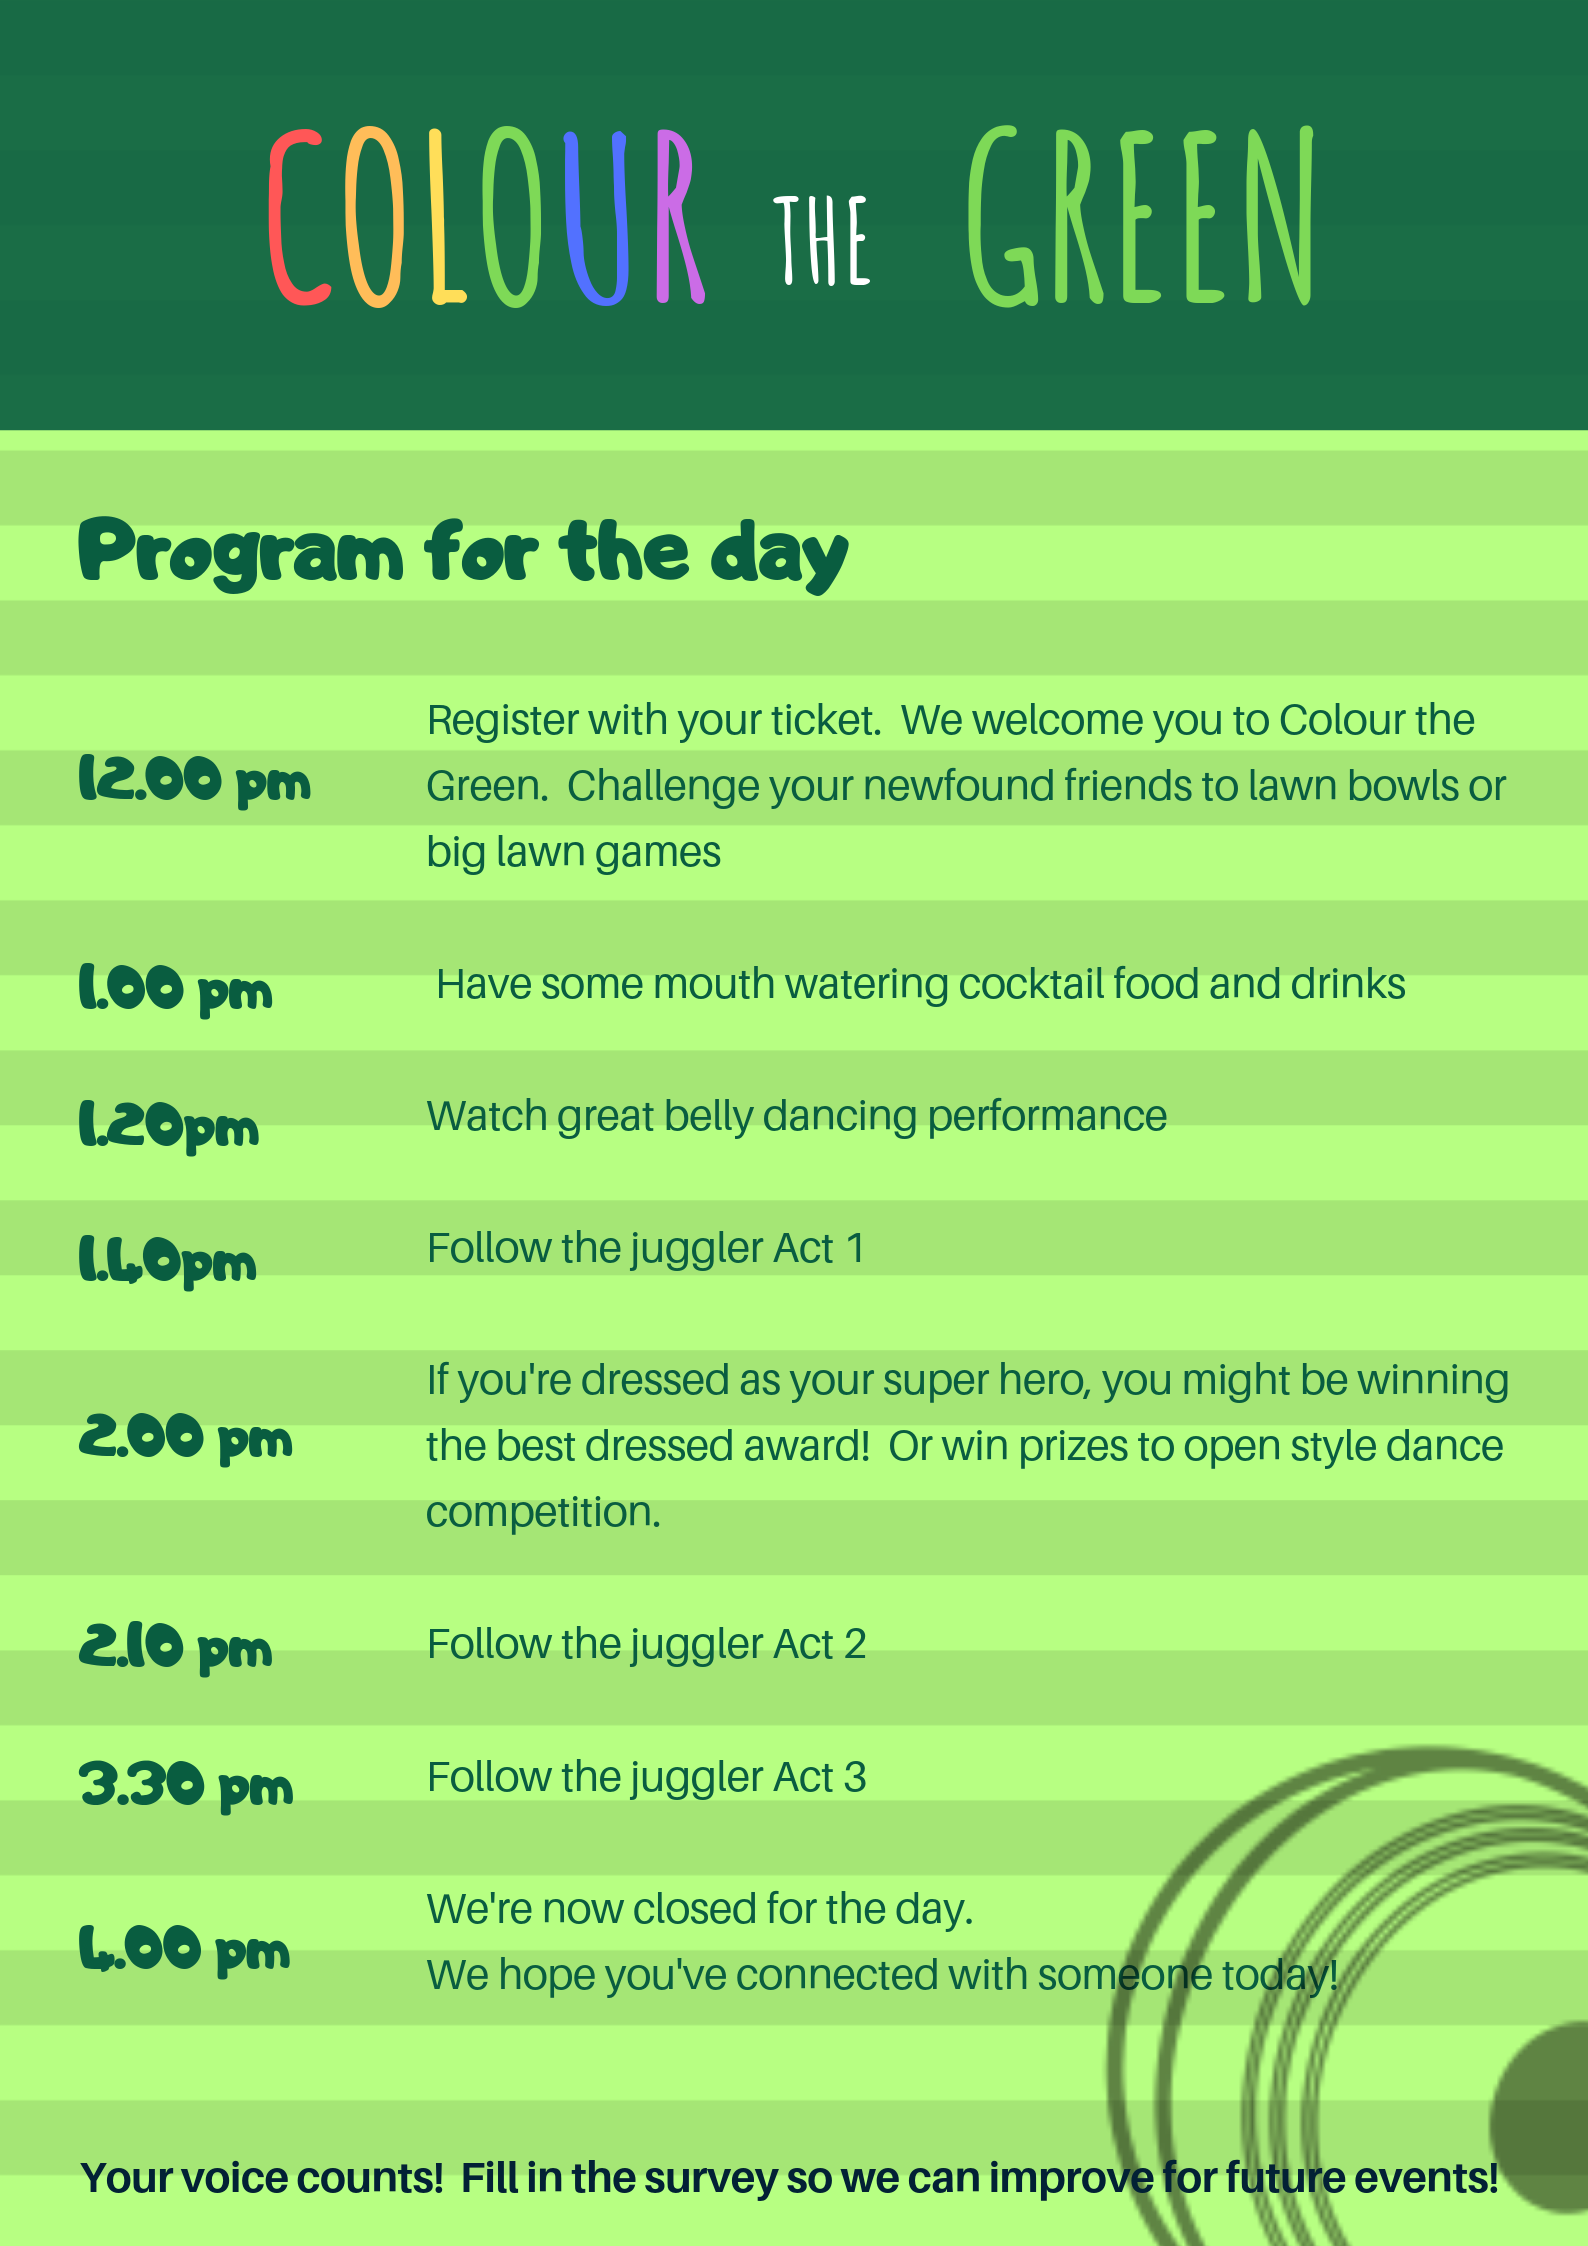 Program for the Day